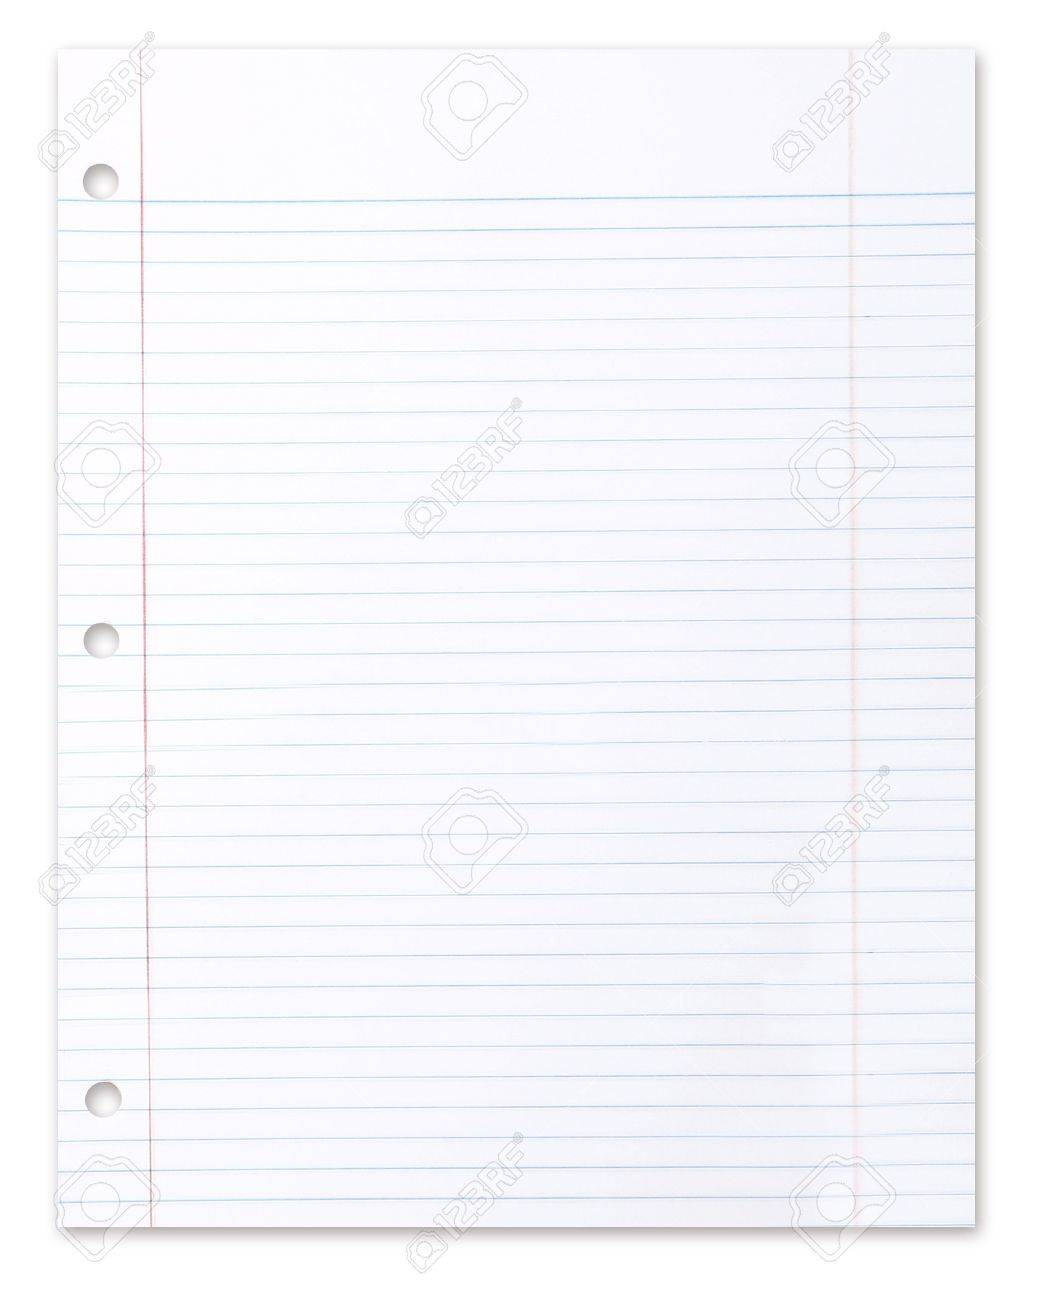 Blank Piece Of School Lined Paper On White With A Drop Shadow – Lined Blank Paper